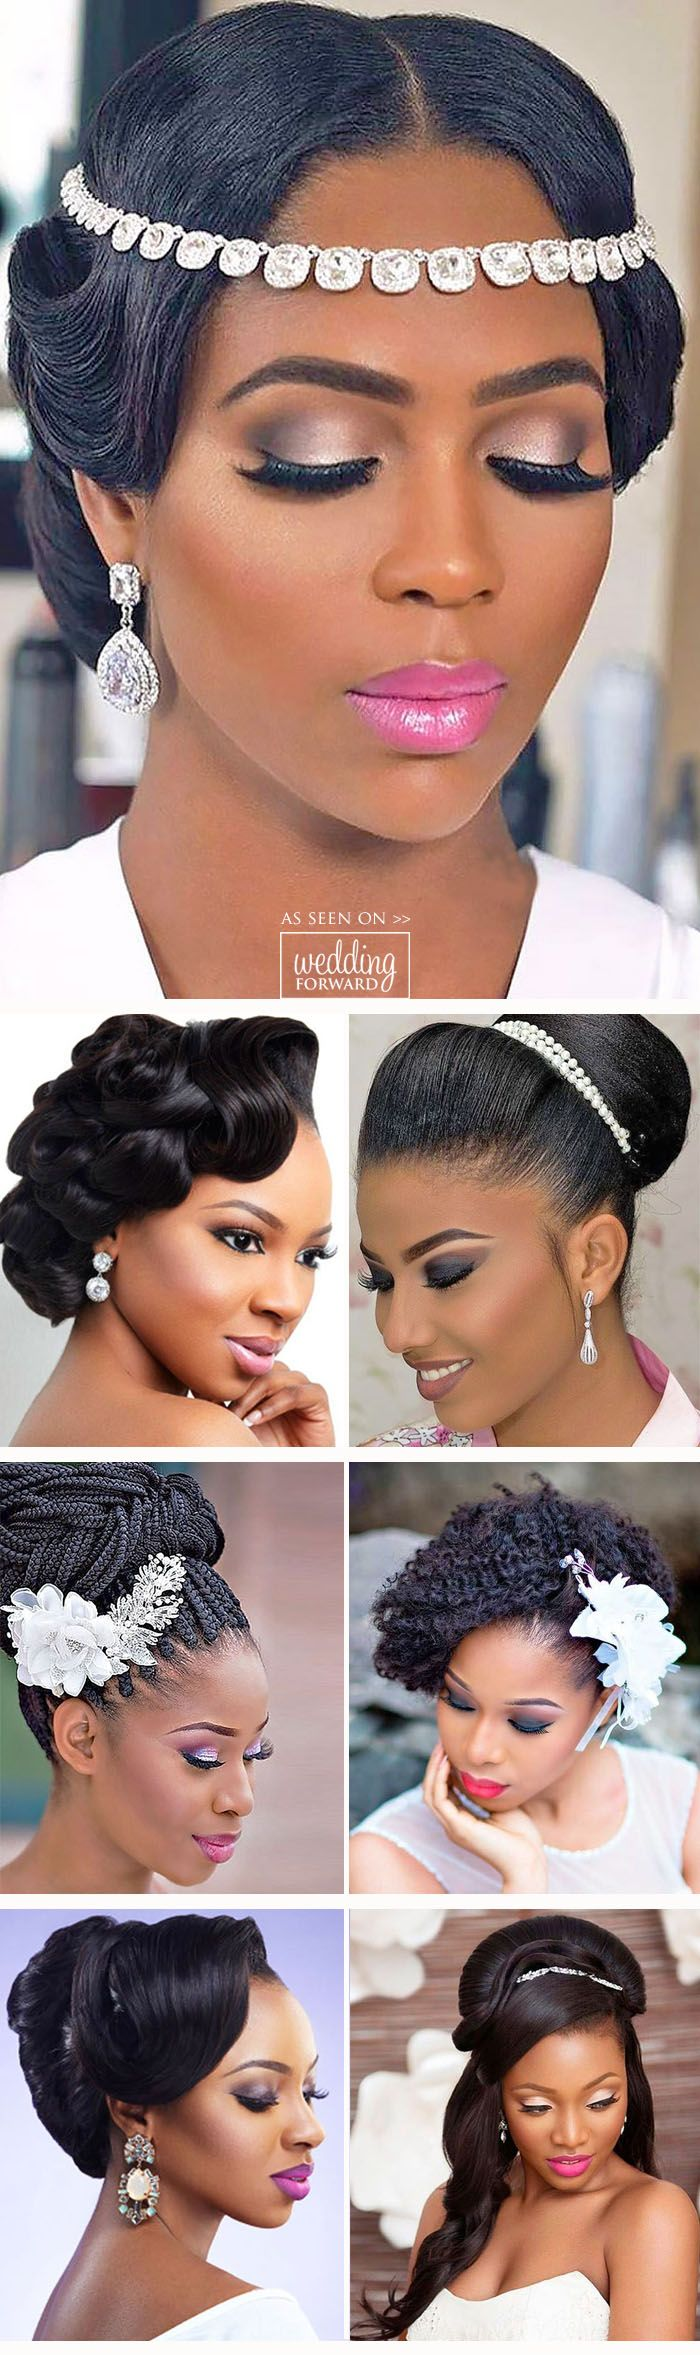 24 Black Women Wedding Hairstyles ❤ It is not a difficult task to pick the suitable black women wedding hairstyles that looks great. See more: http://www.weddingforward.com/black-women-wedding-hairstyles/ #weddings #hairstyles